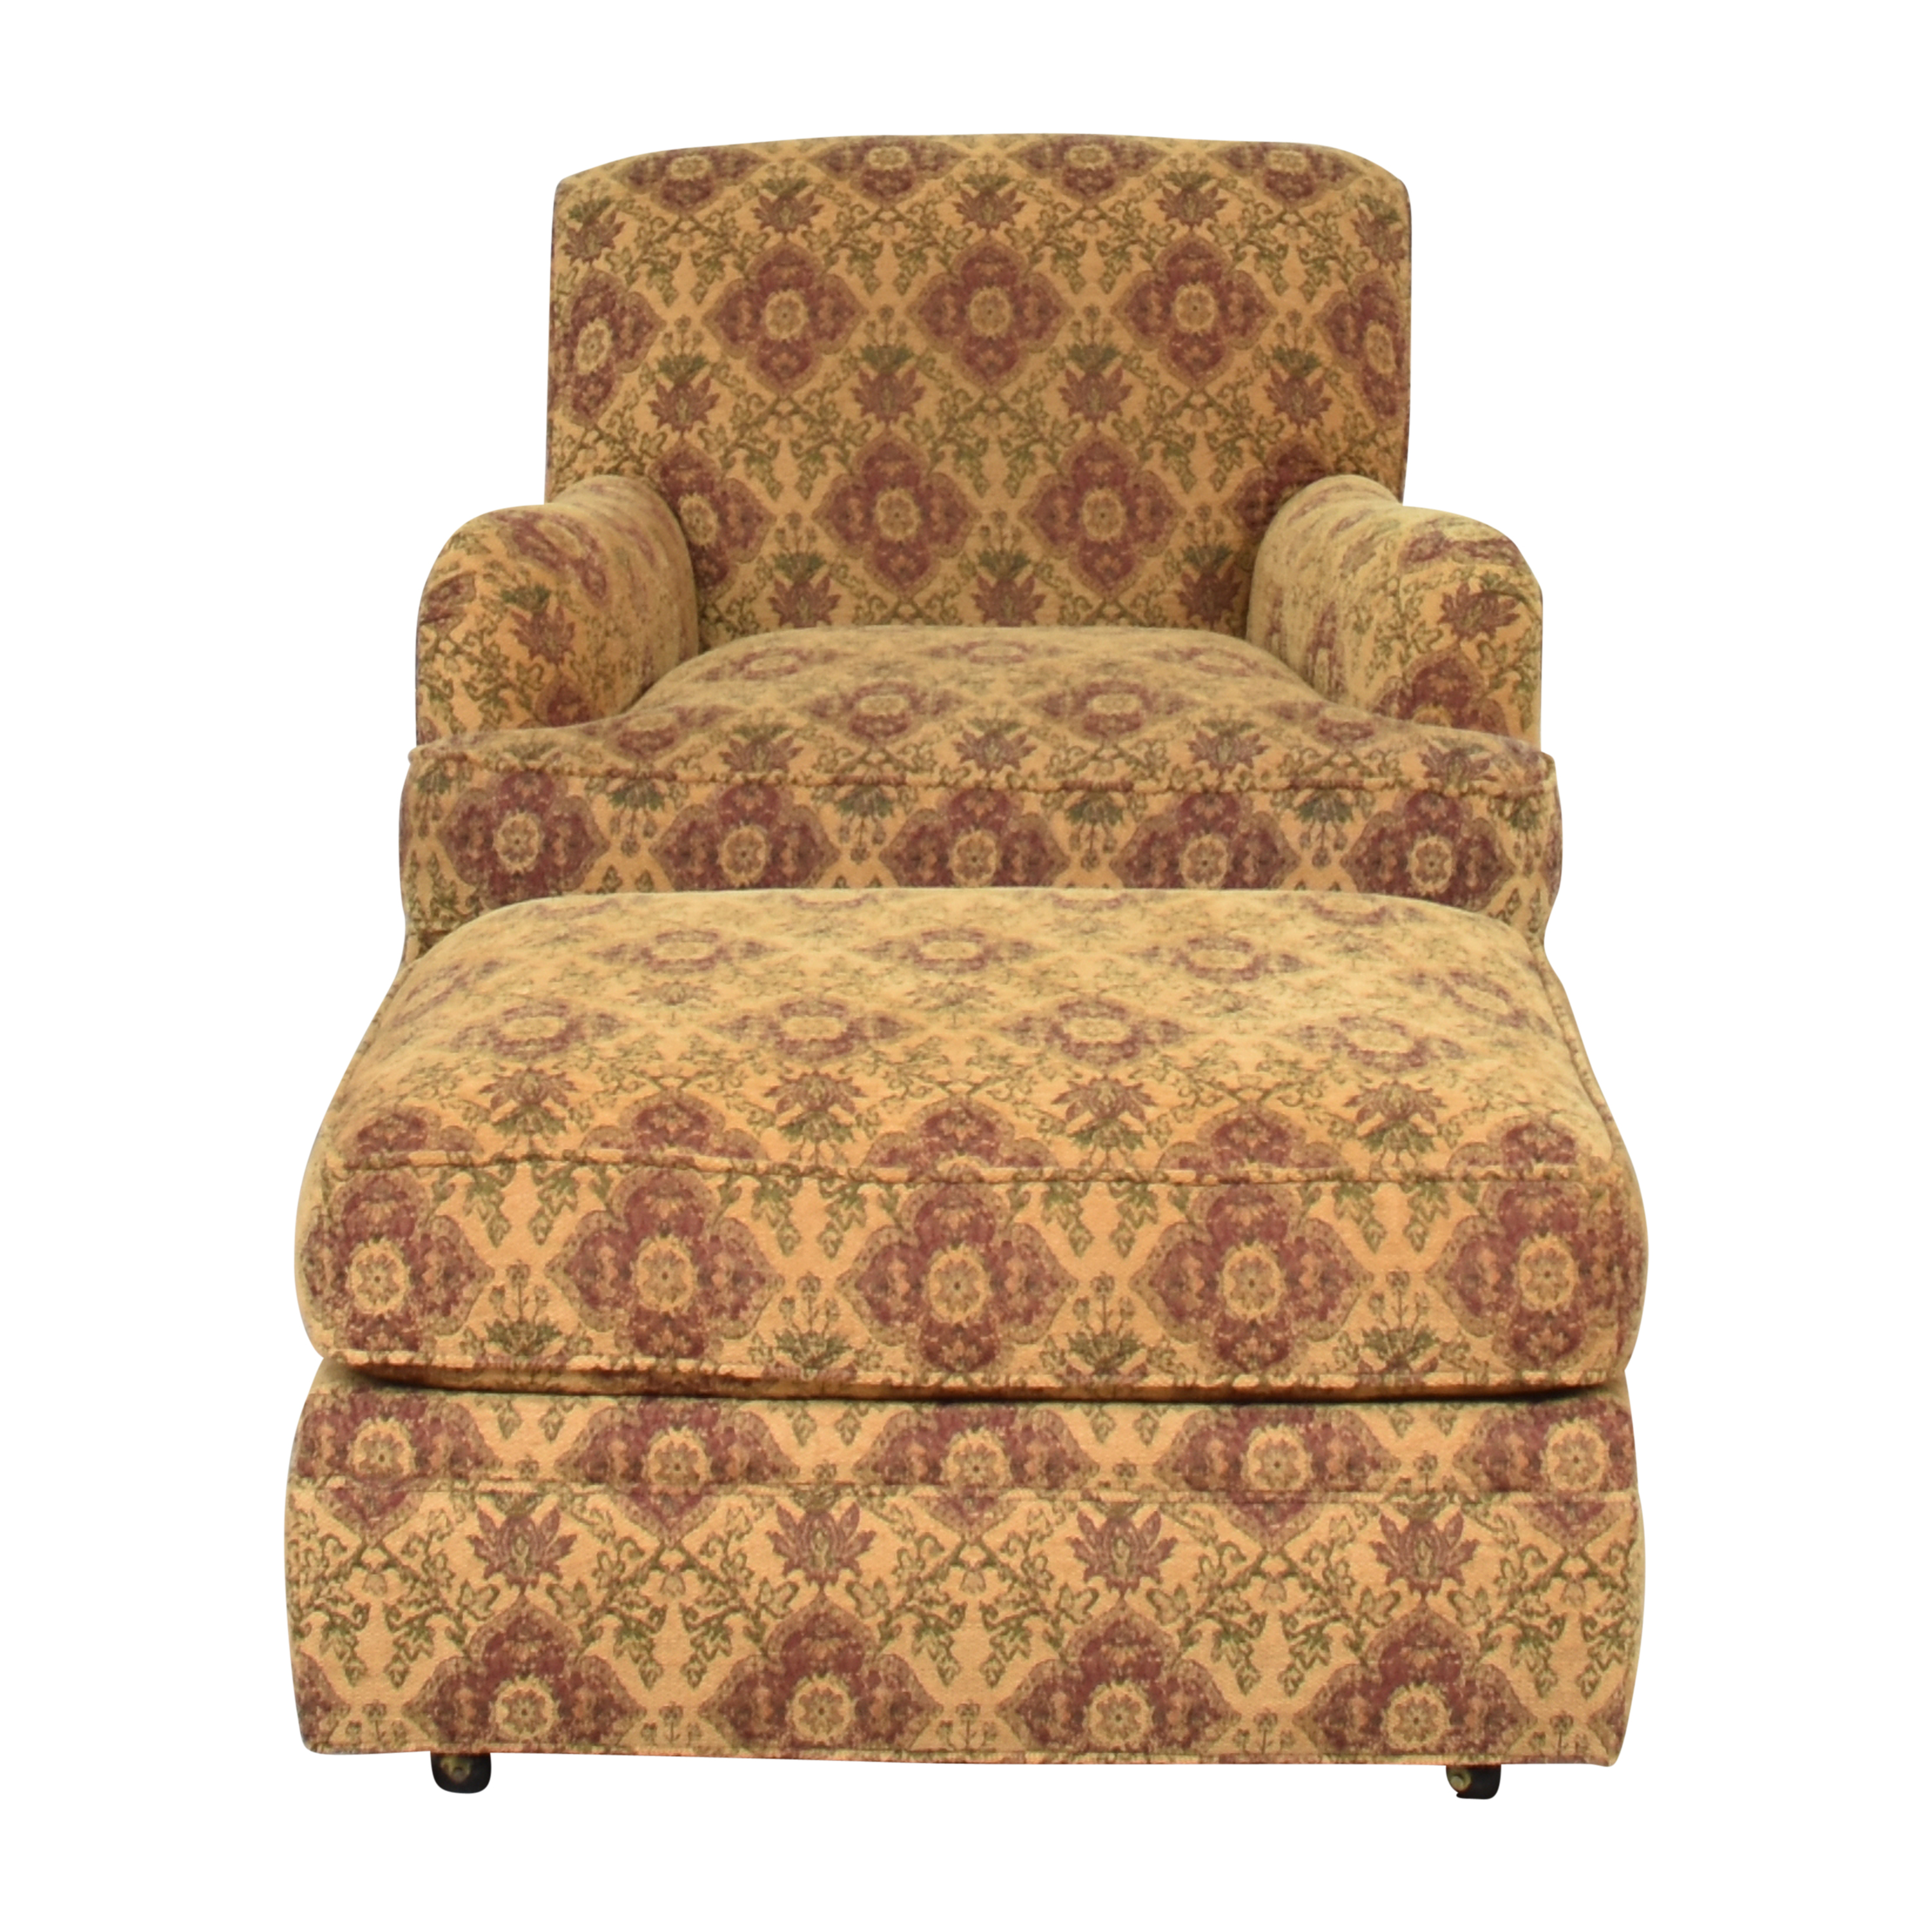 Crate & Barrel Crate & Barrel Upholstered Arm Chair with Ottoman Chairs